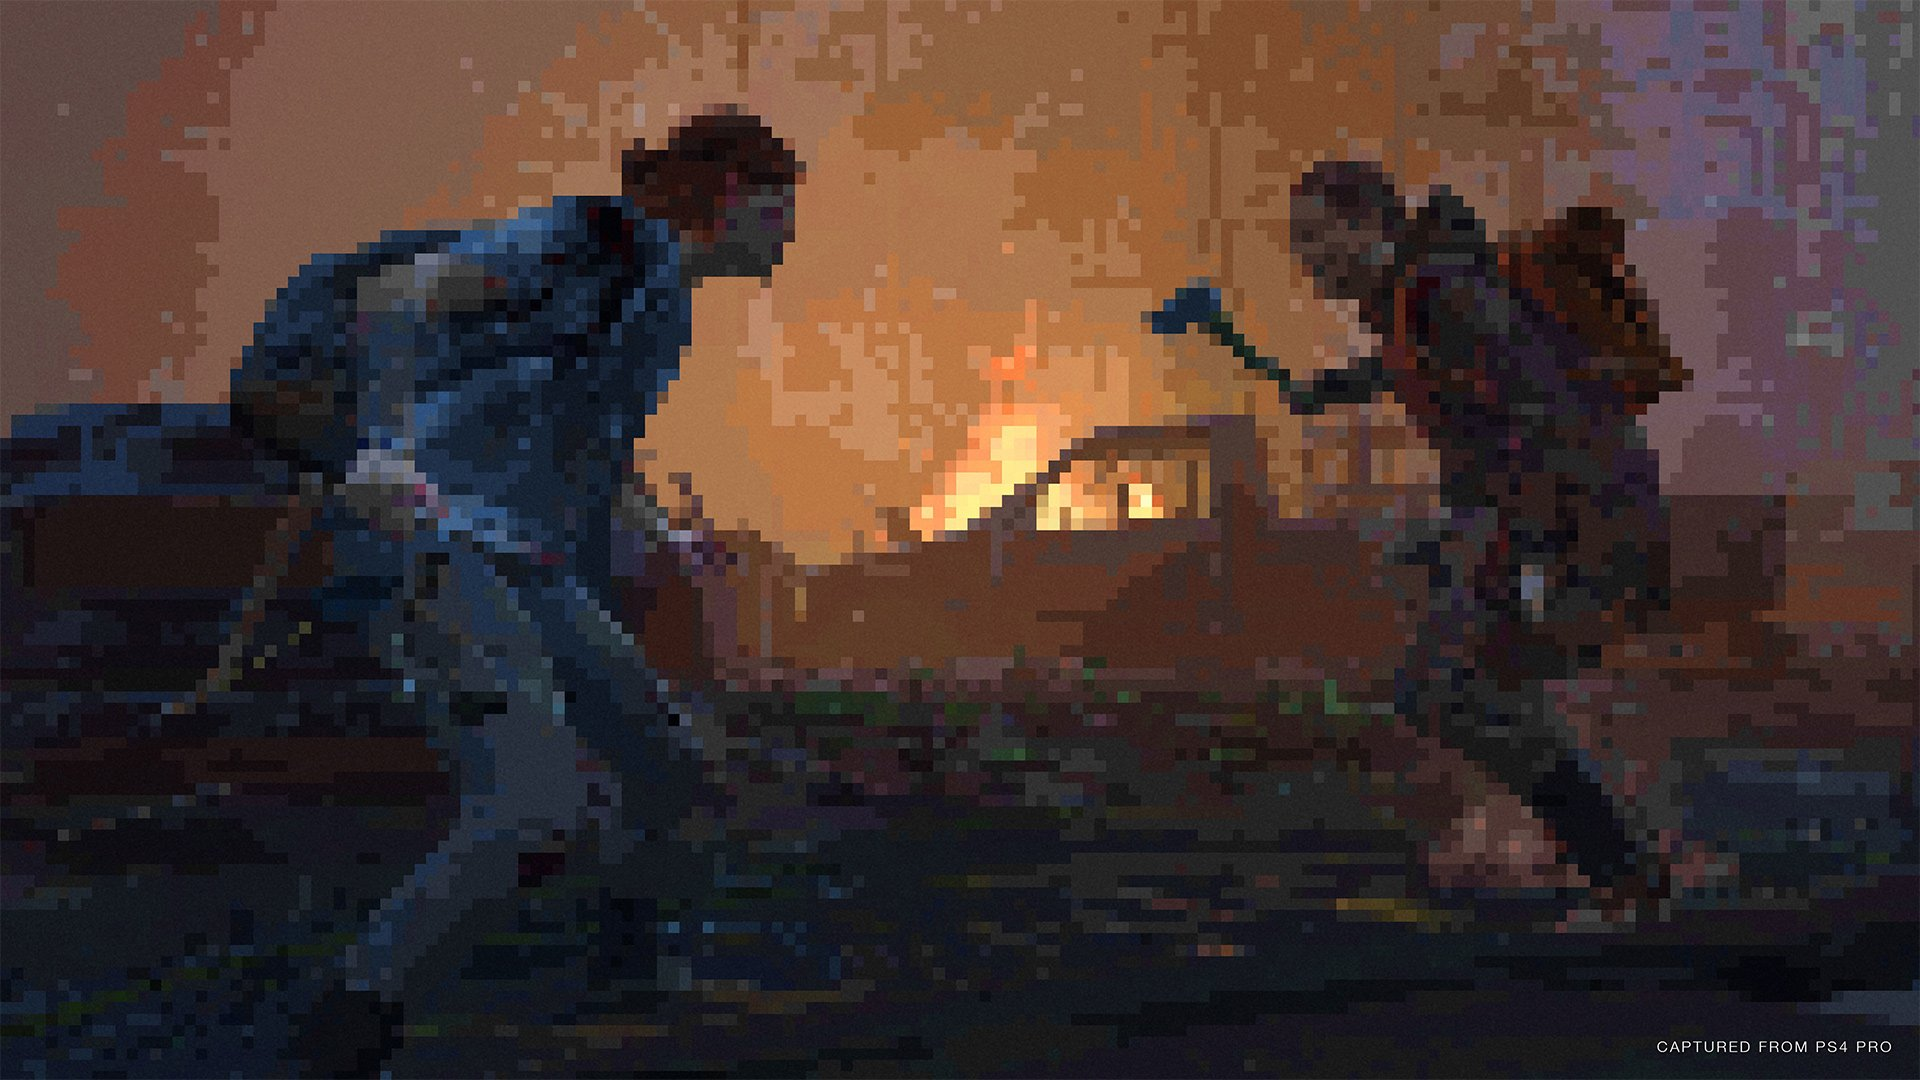 The Last of Us Part II pixelated graphics mode